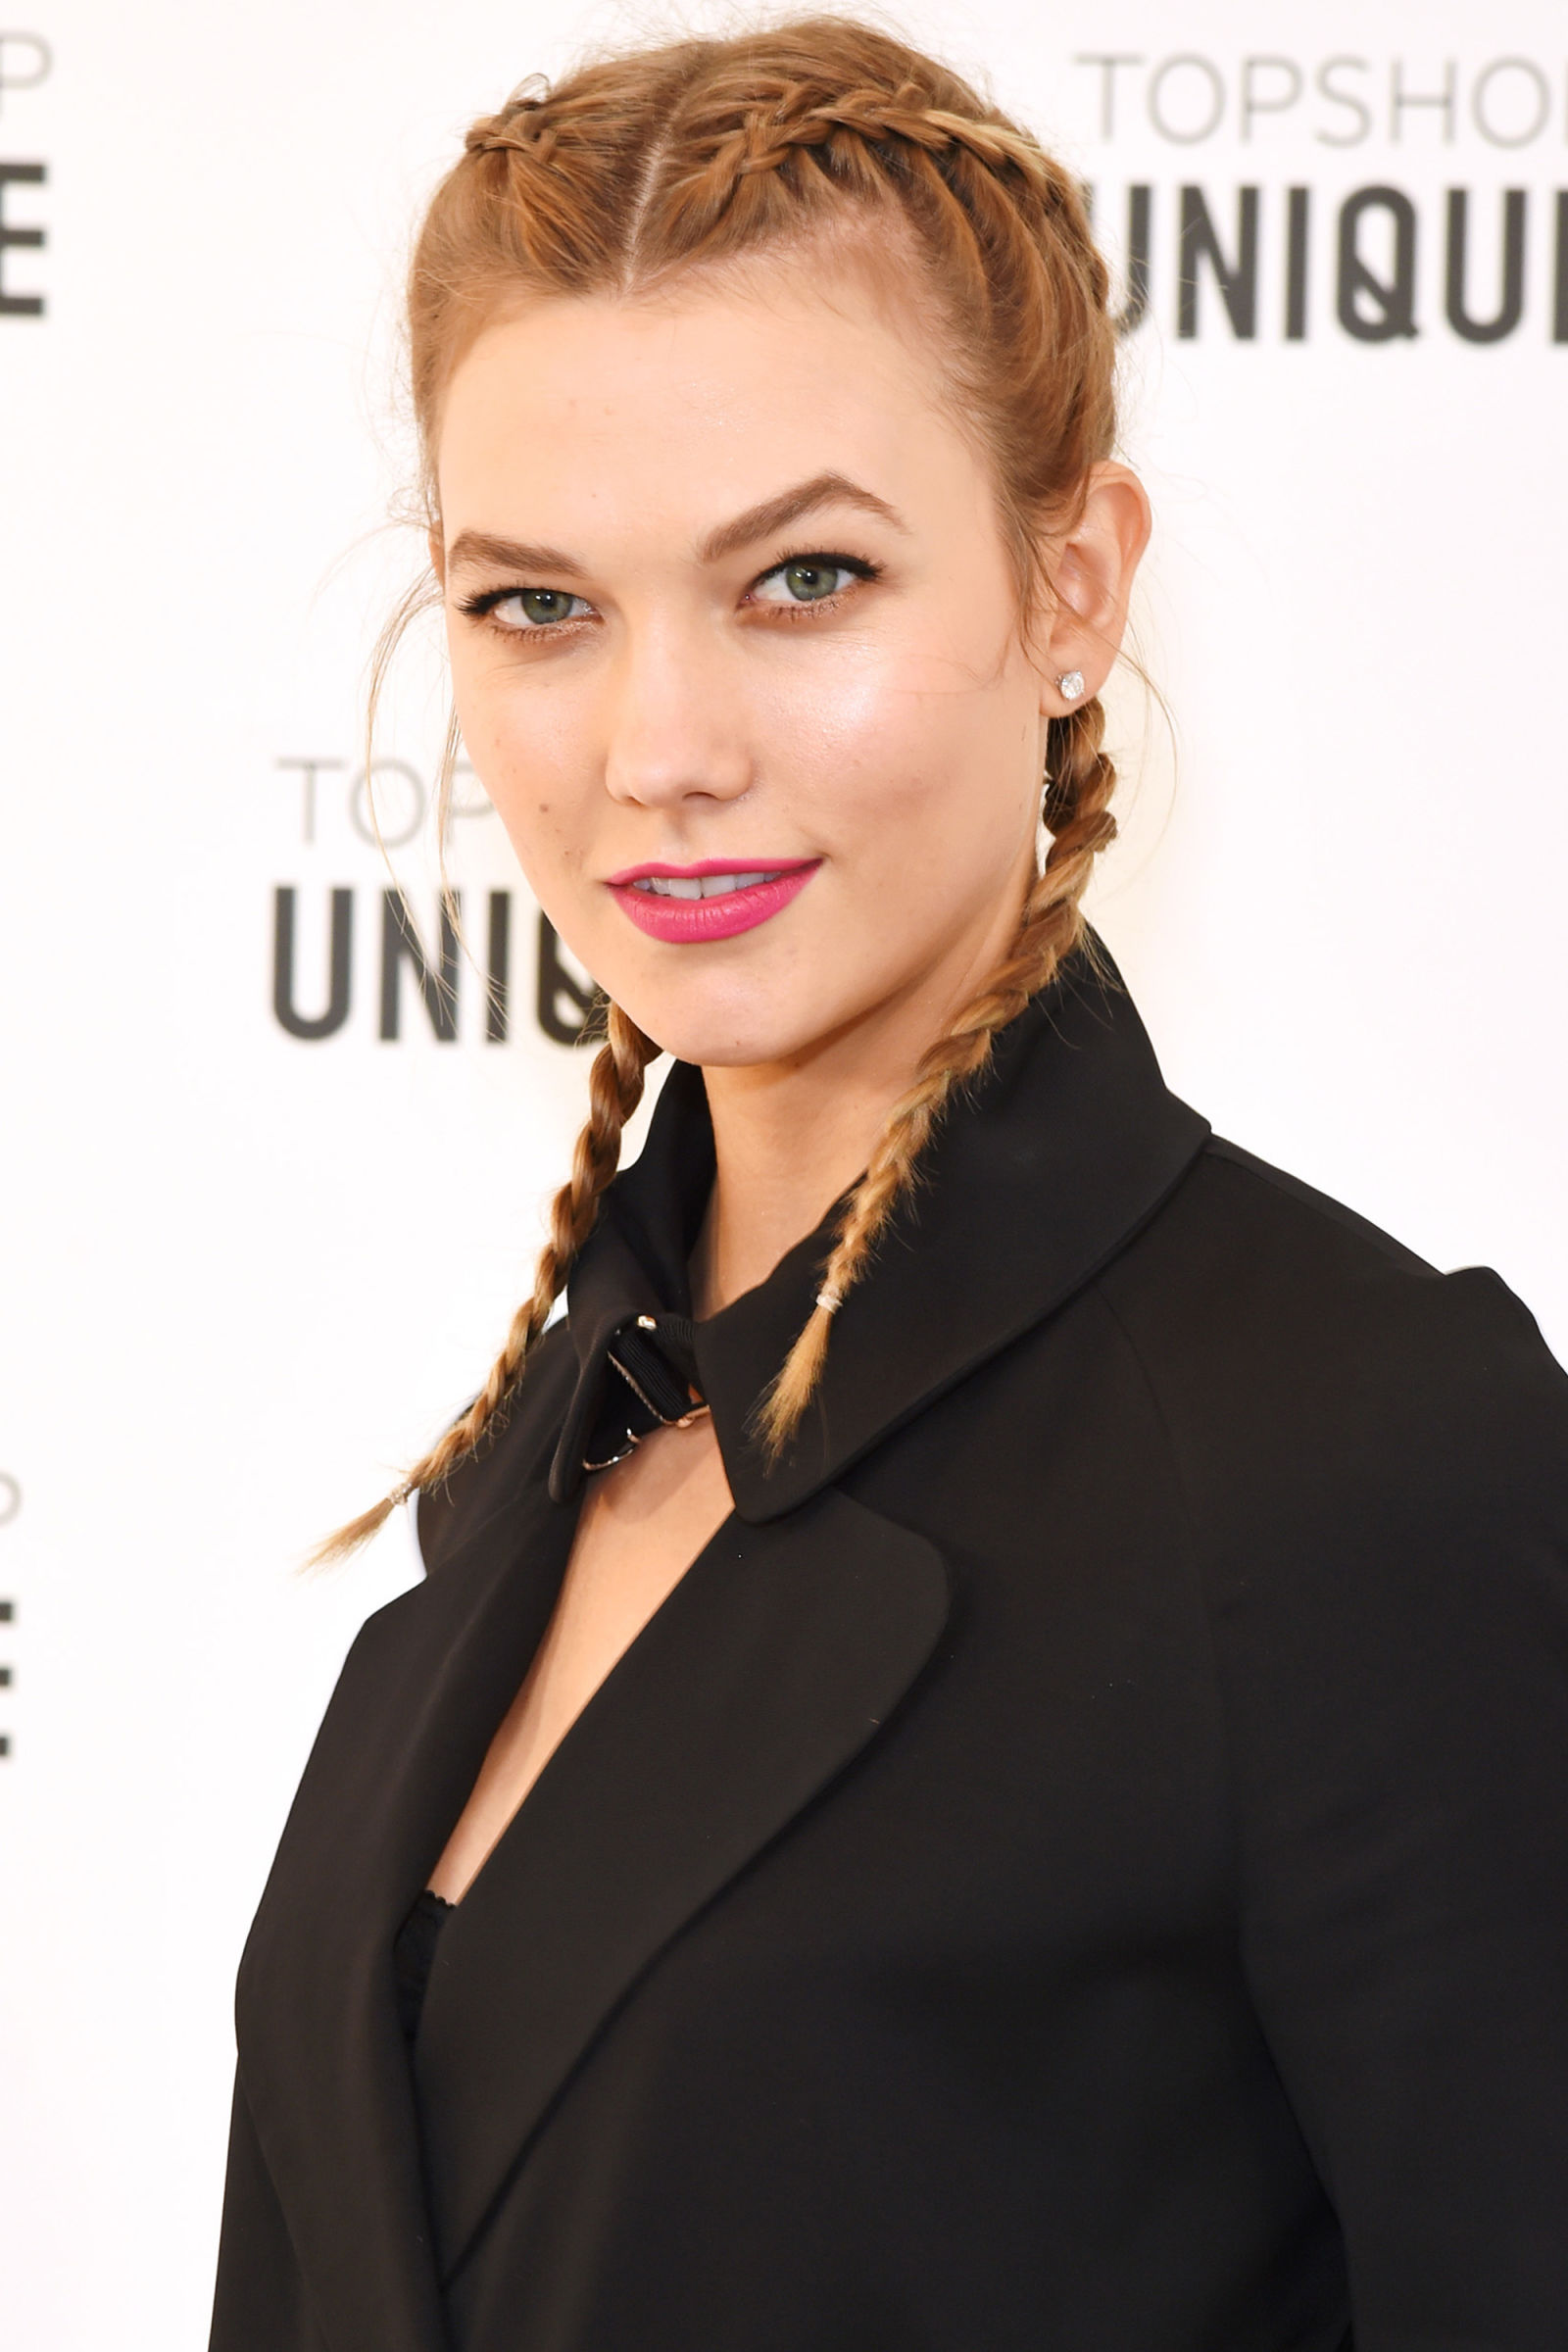 Karlie Kloss celebrity hairstyles